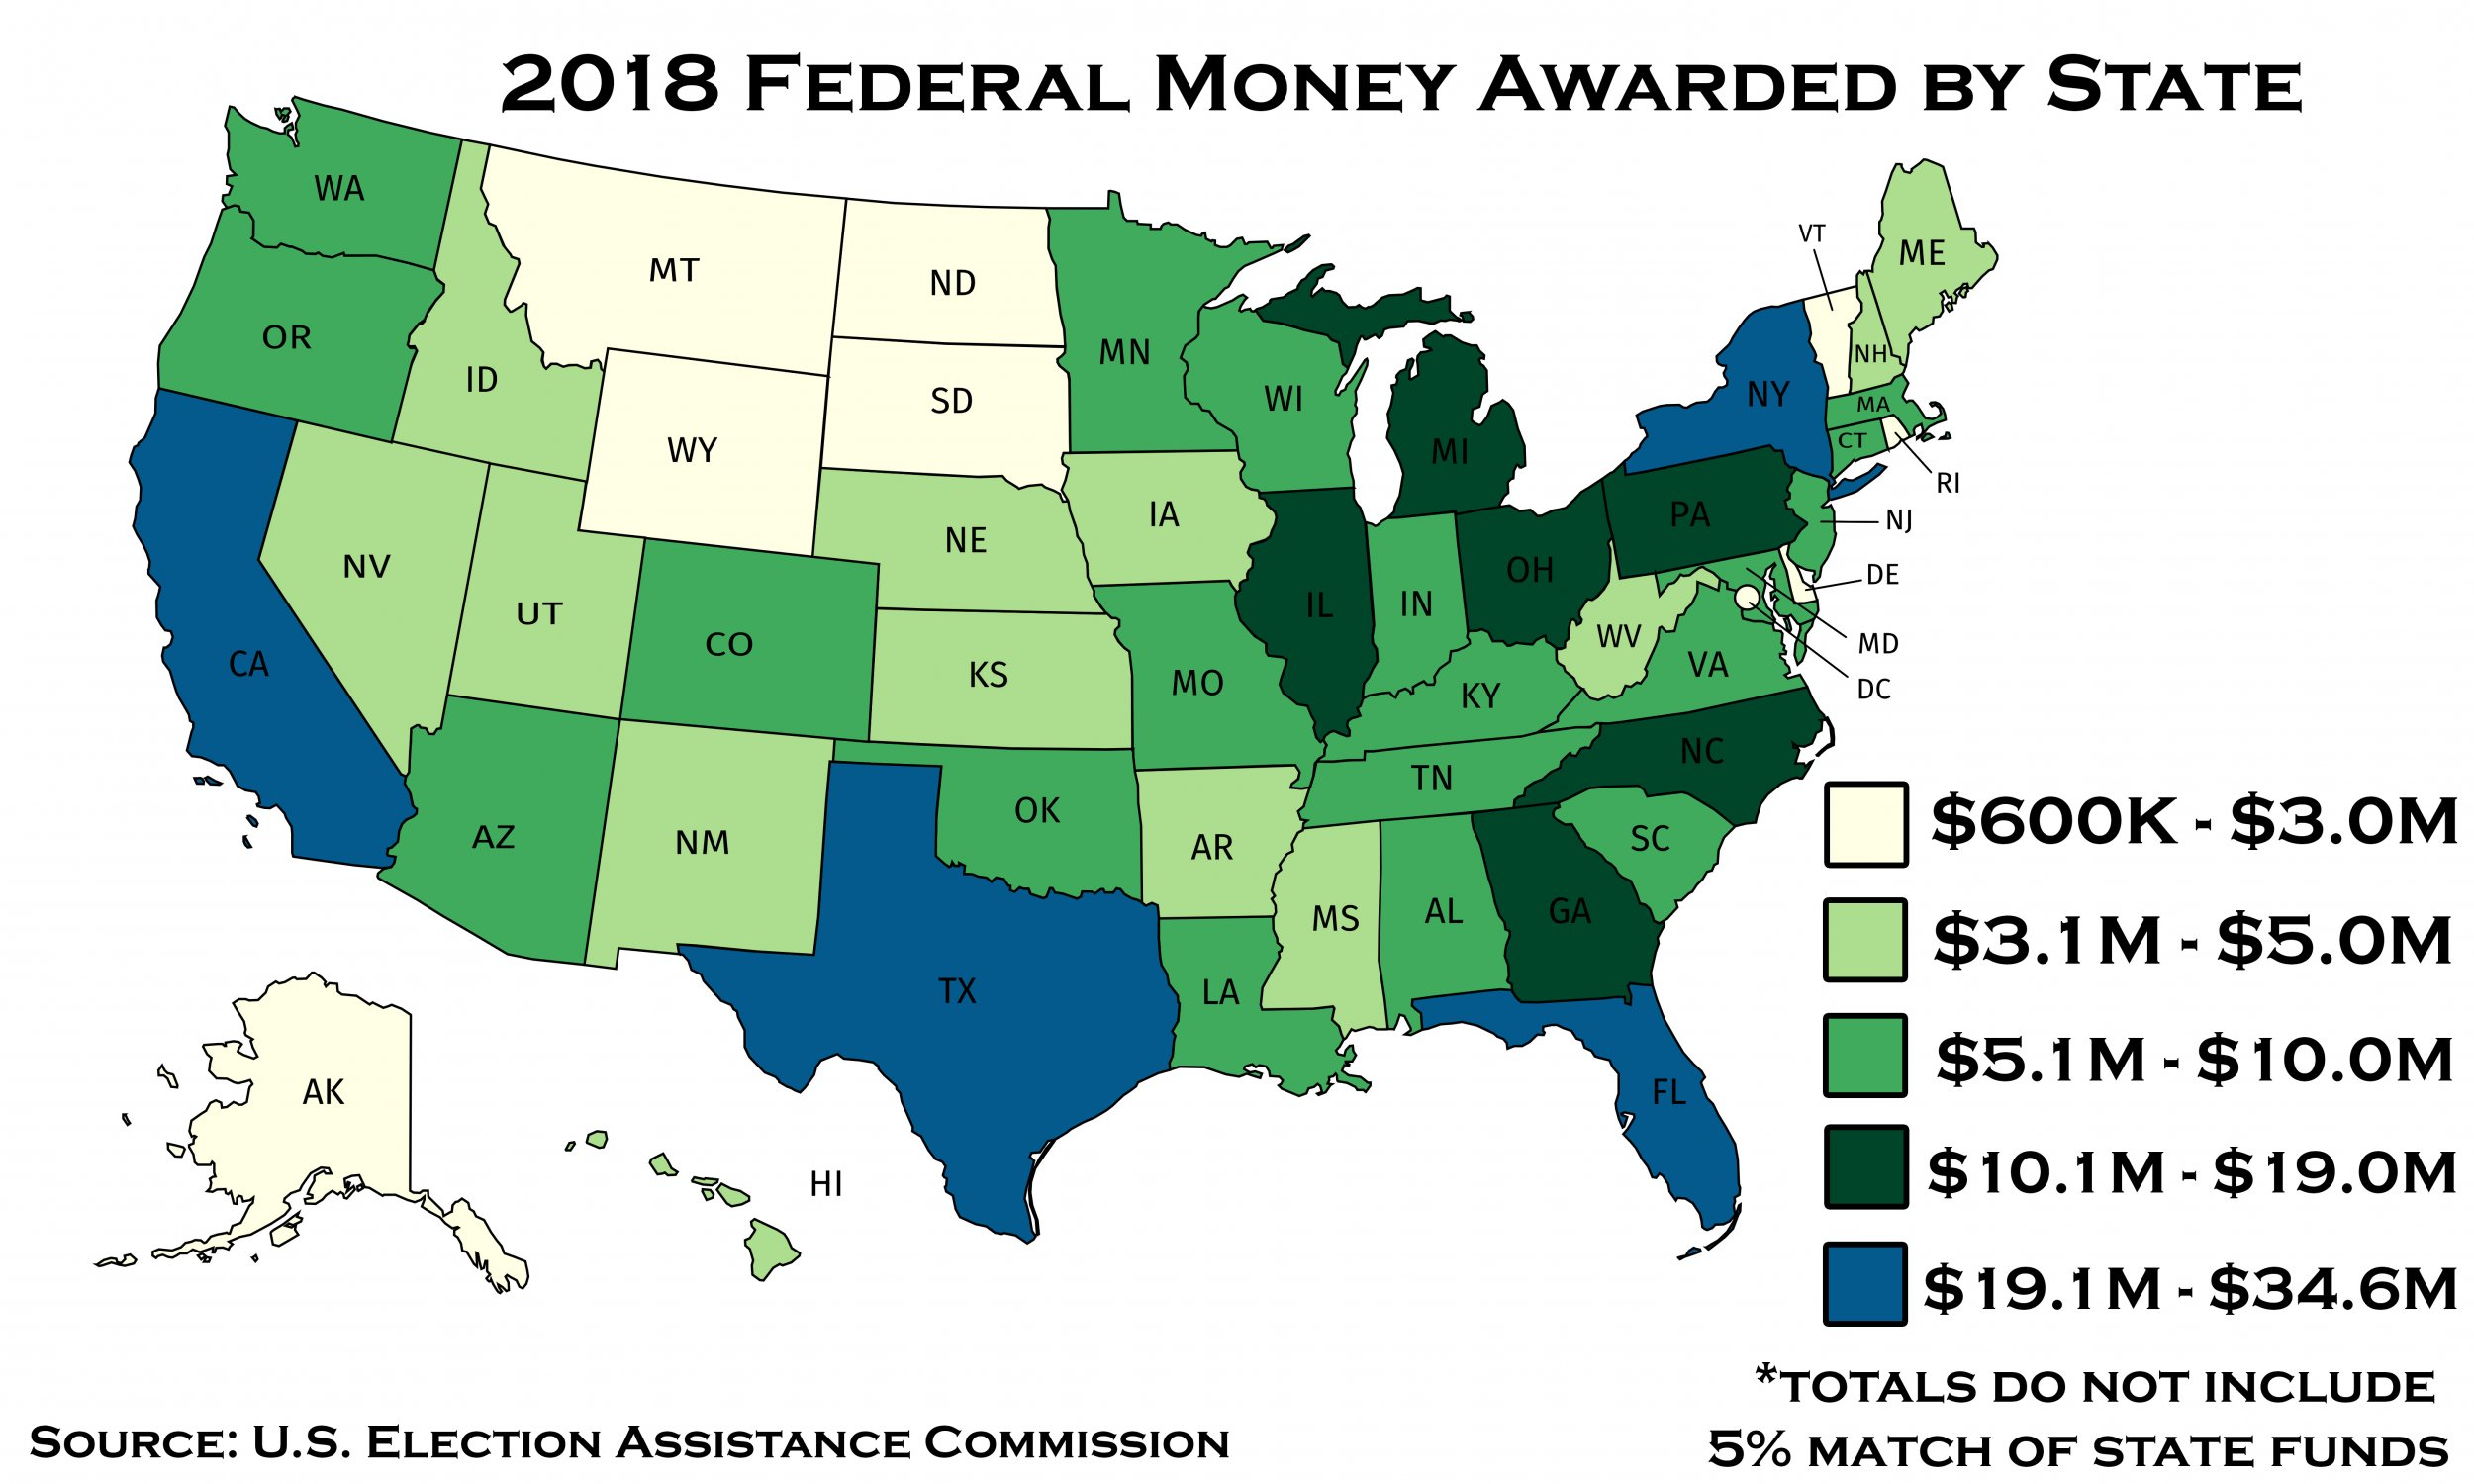 Federal Monday Awarded By State